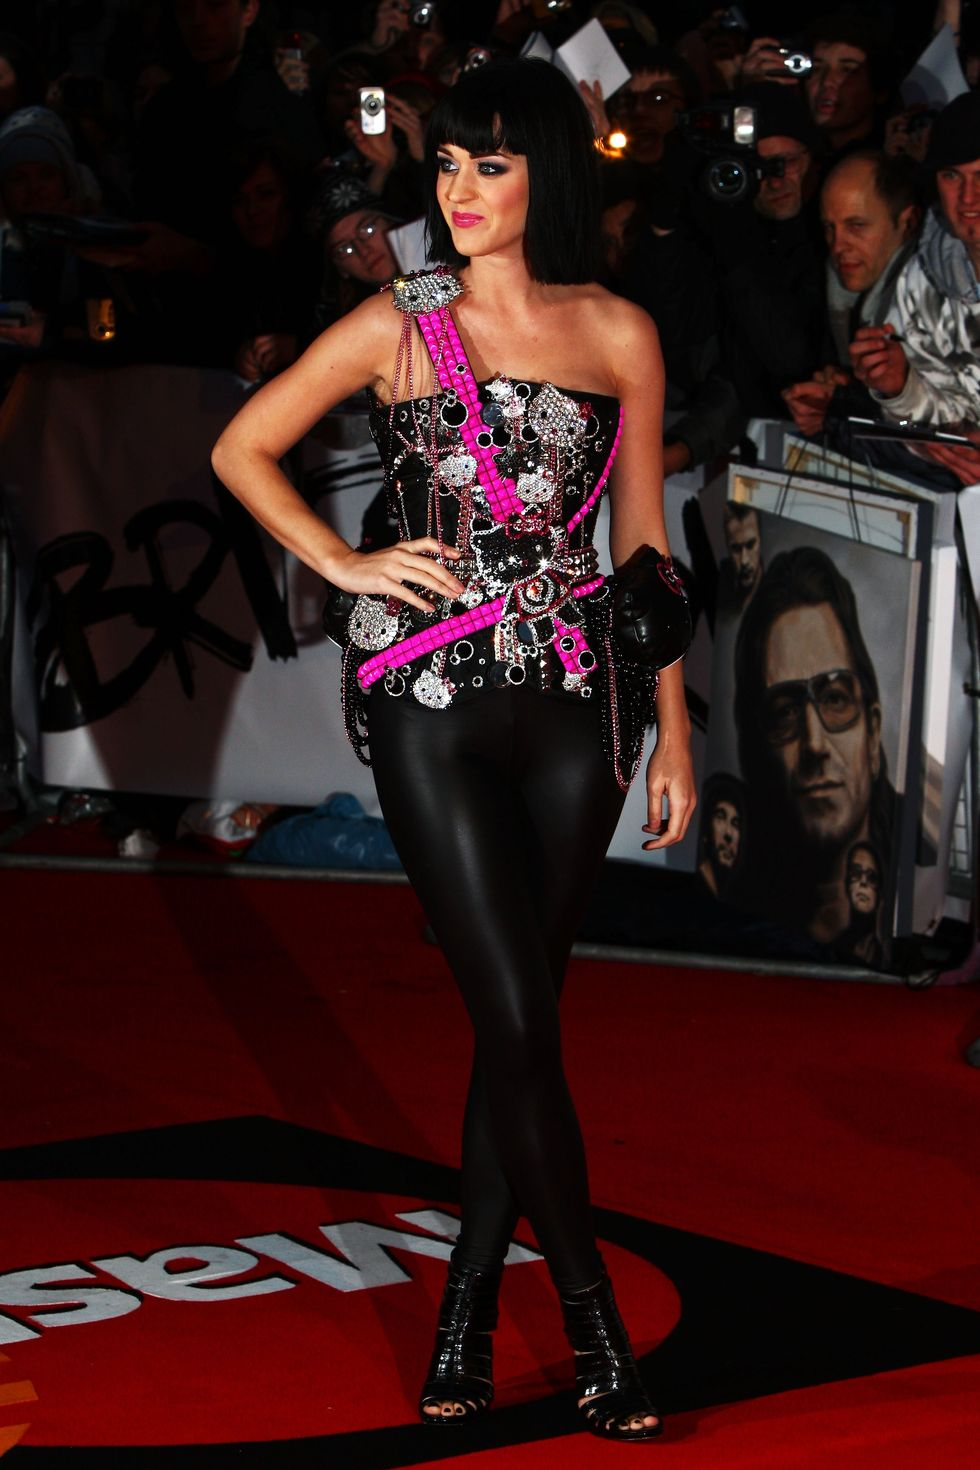 katy-perry-brit-awards-2009-in-london-01